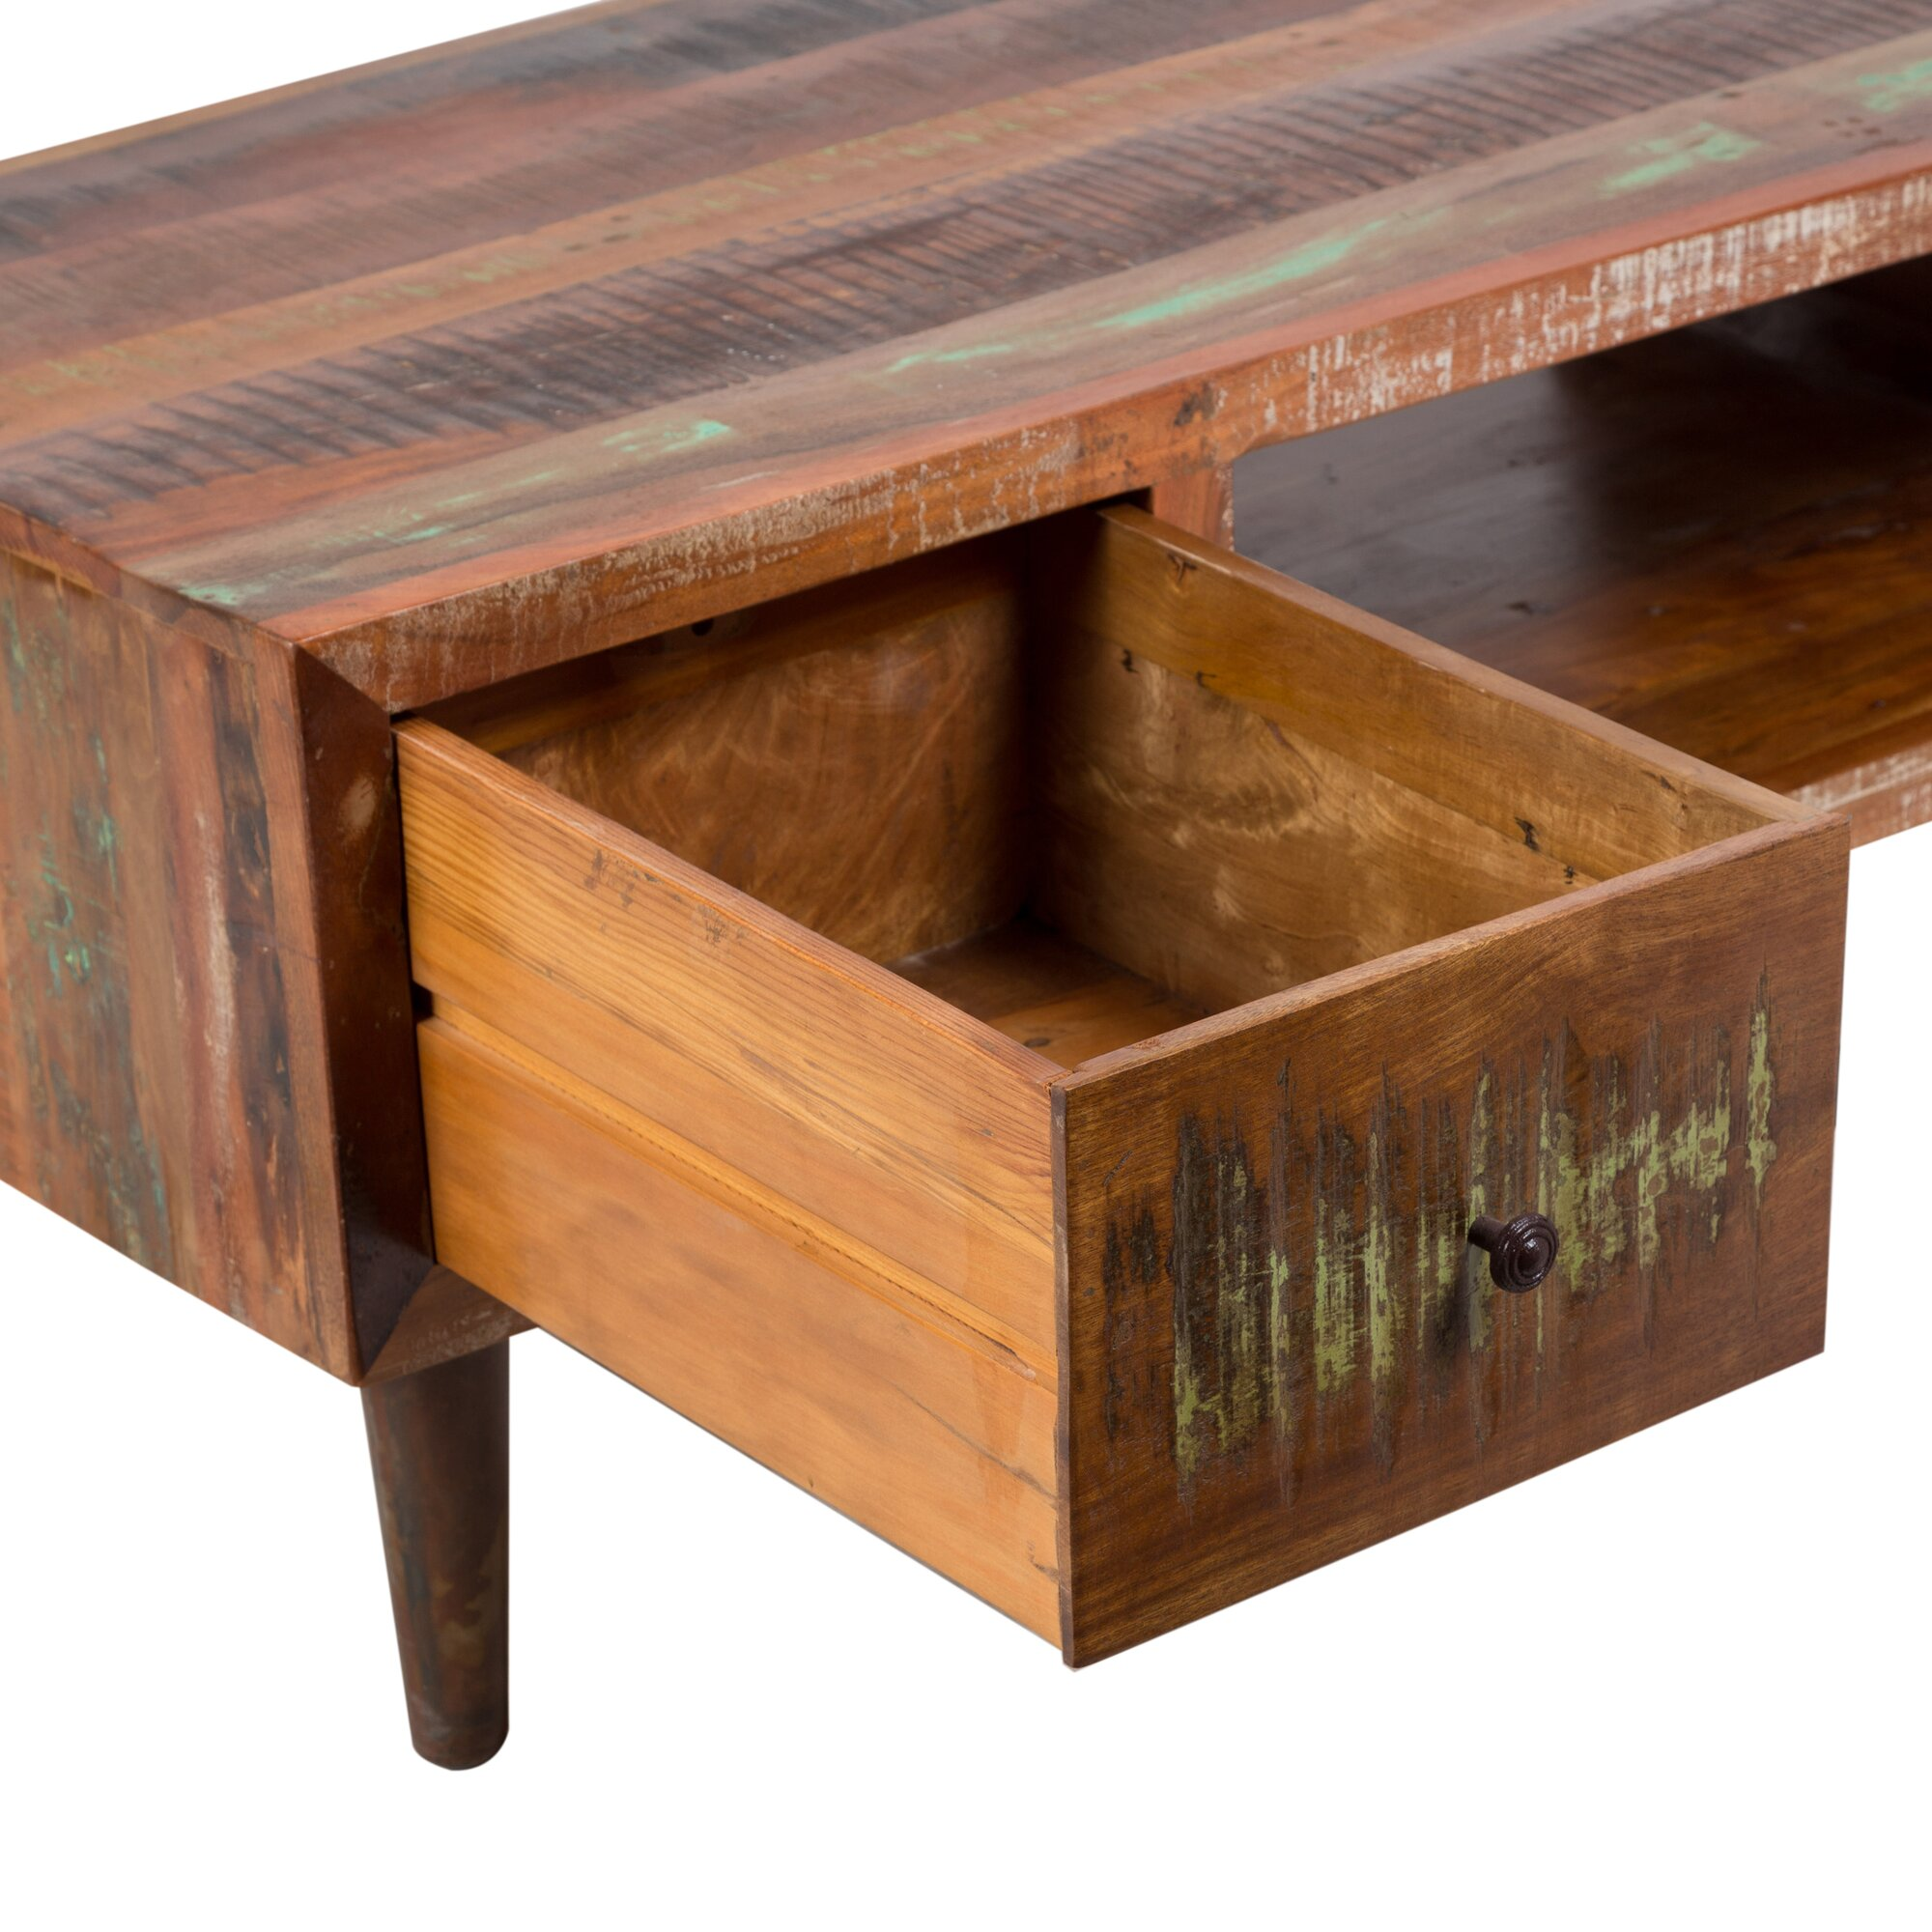 Find The Best Summer Savings On Sustainable Coffee Table